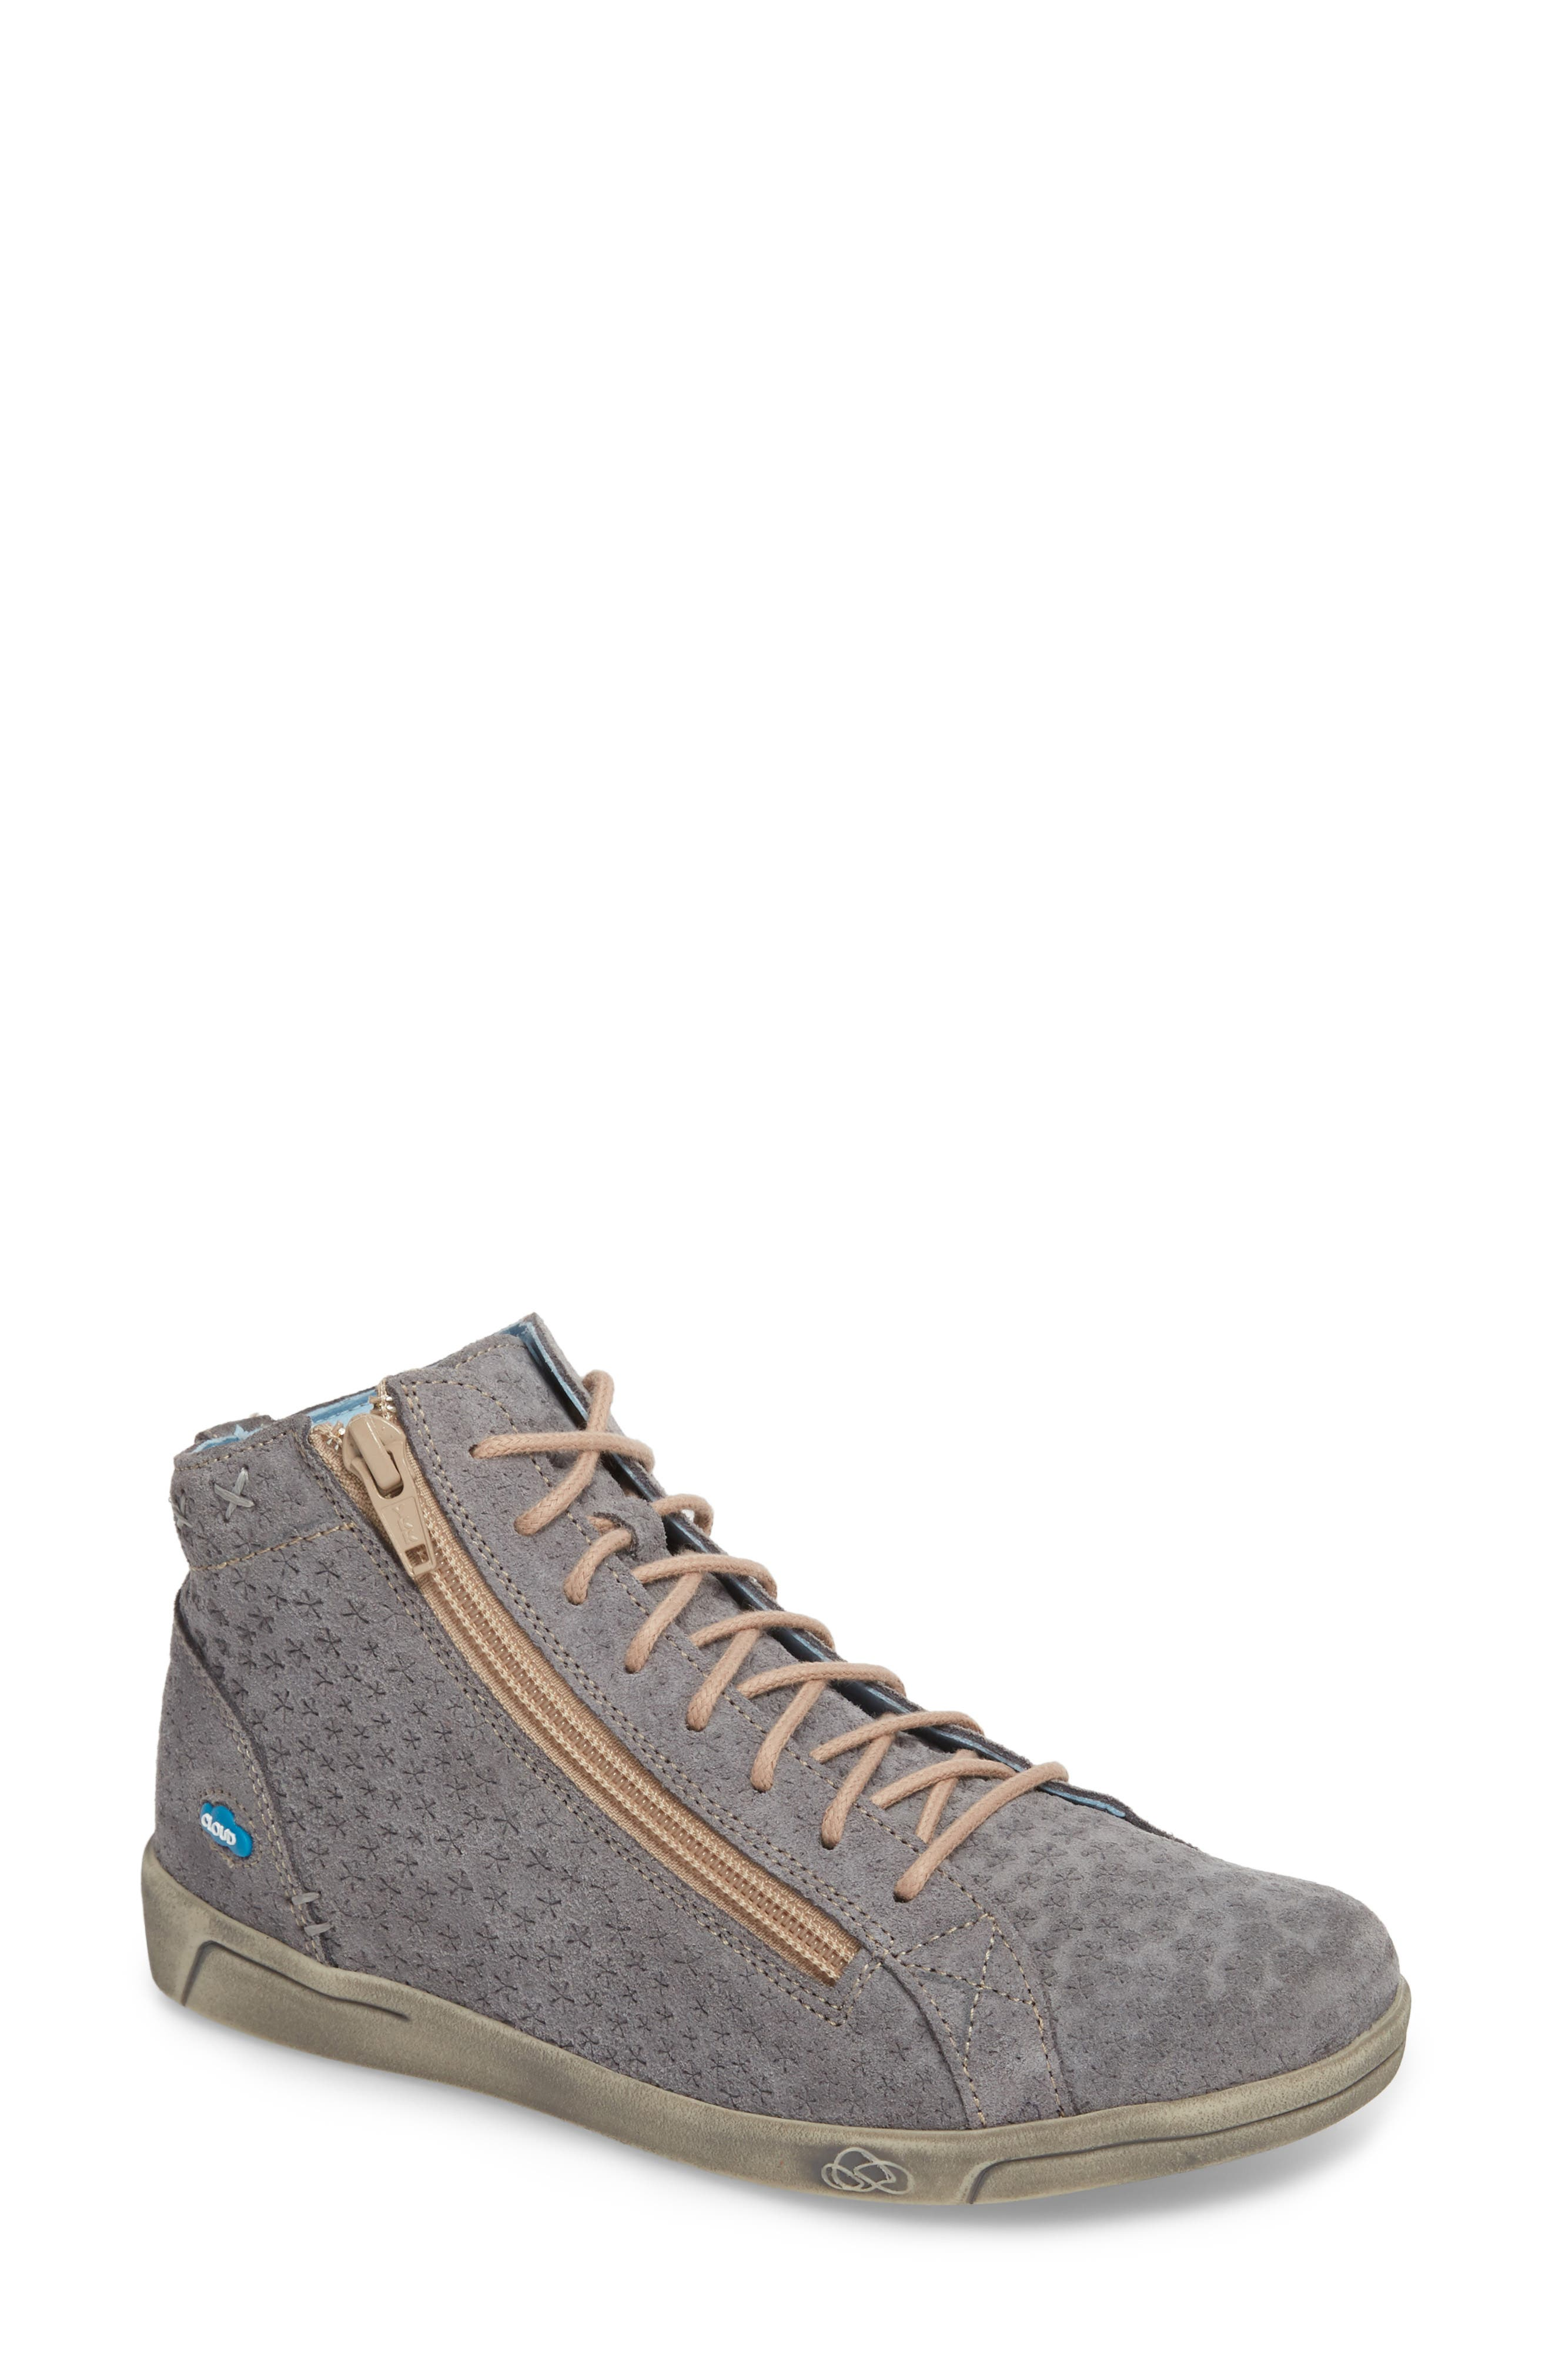 Aika Star Perforated High Top Sneaker,                             Main thumbnail 1, color,                             Grey Leather